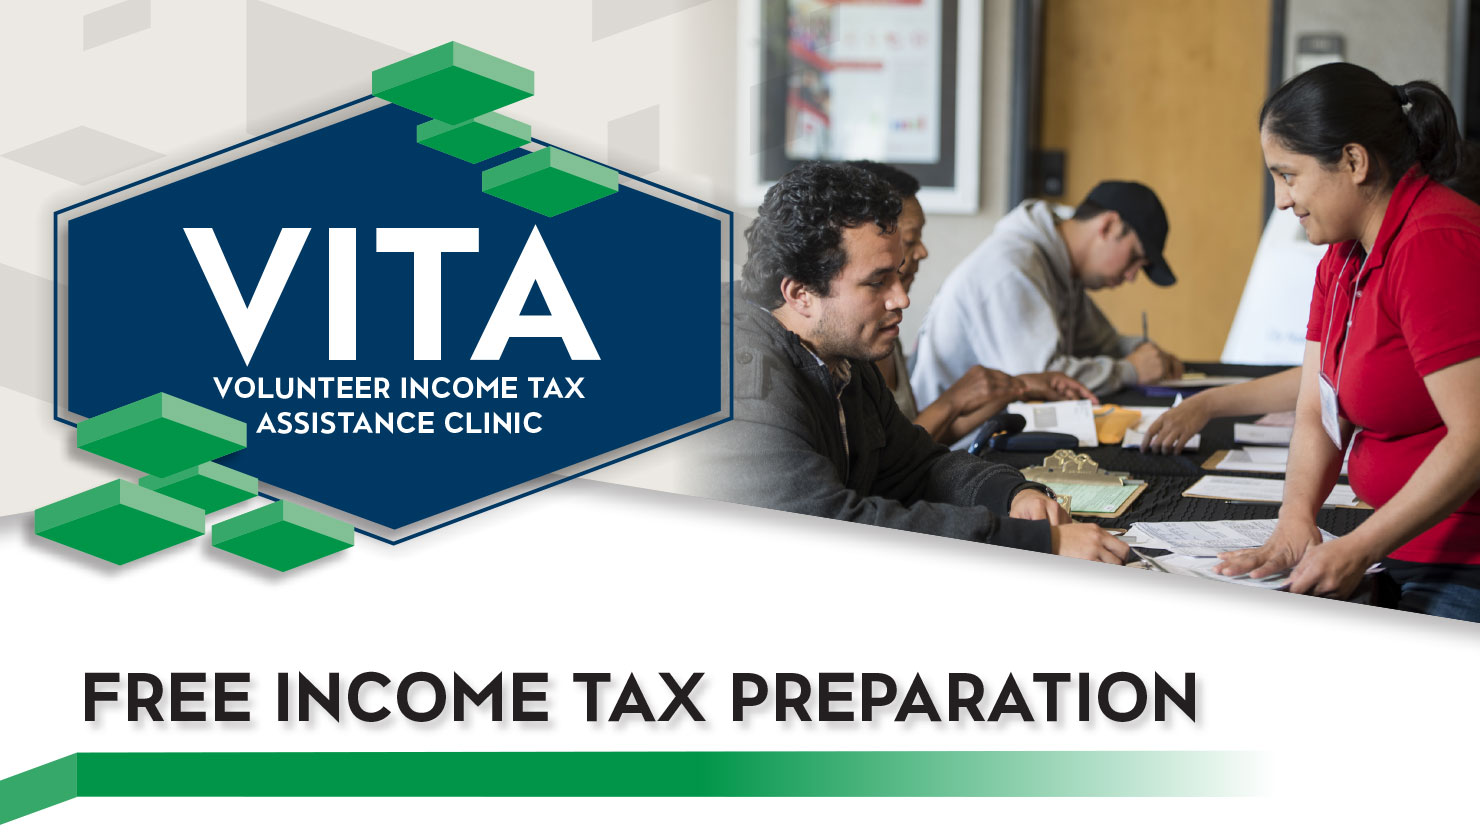 Student helping community members file taxes next to computer - VITA and Free income tax preparation are spelled over image